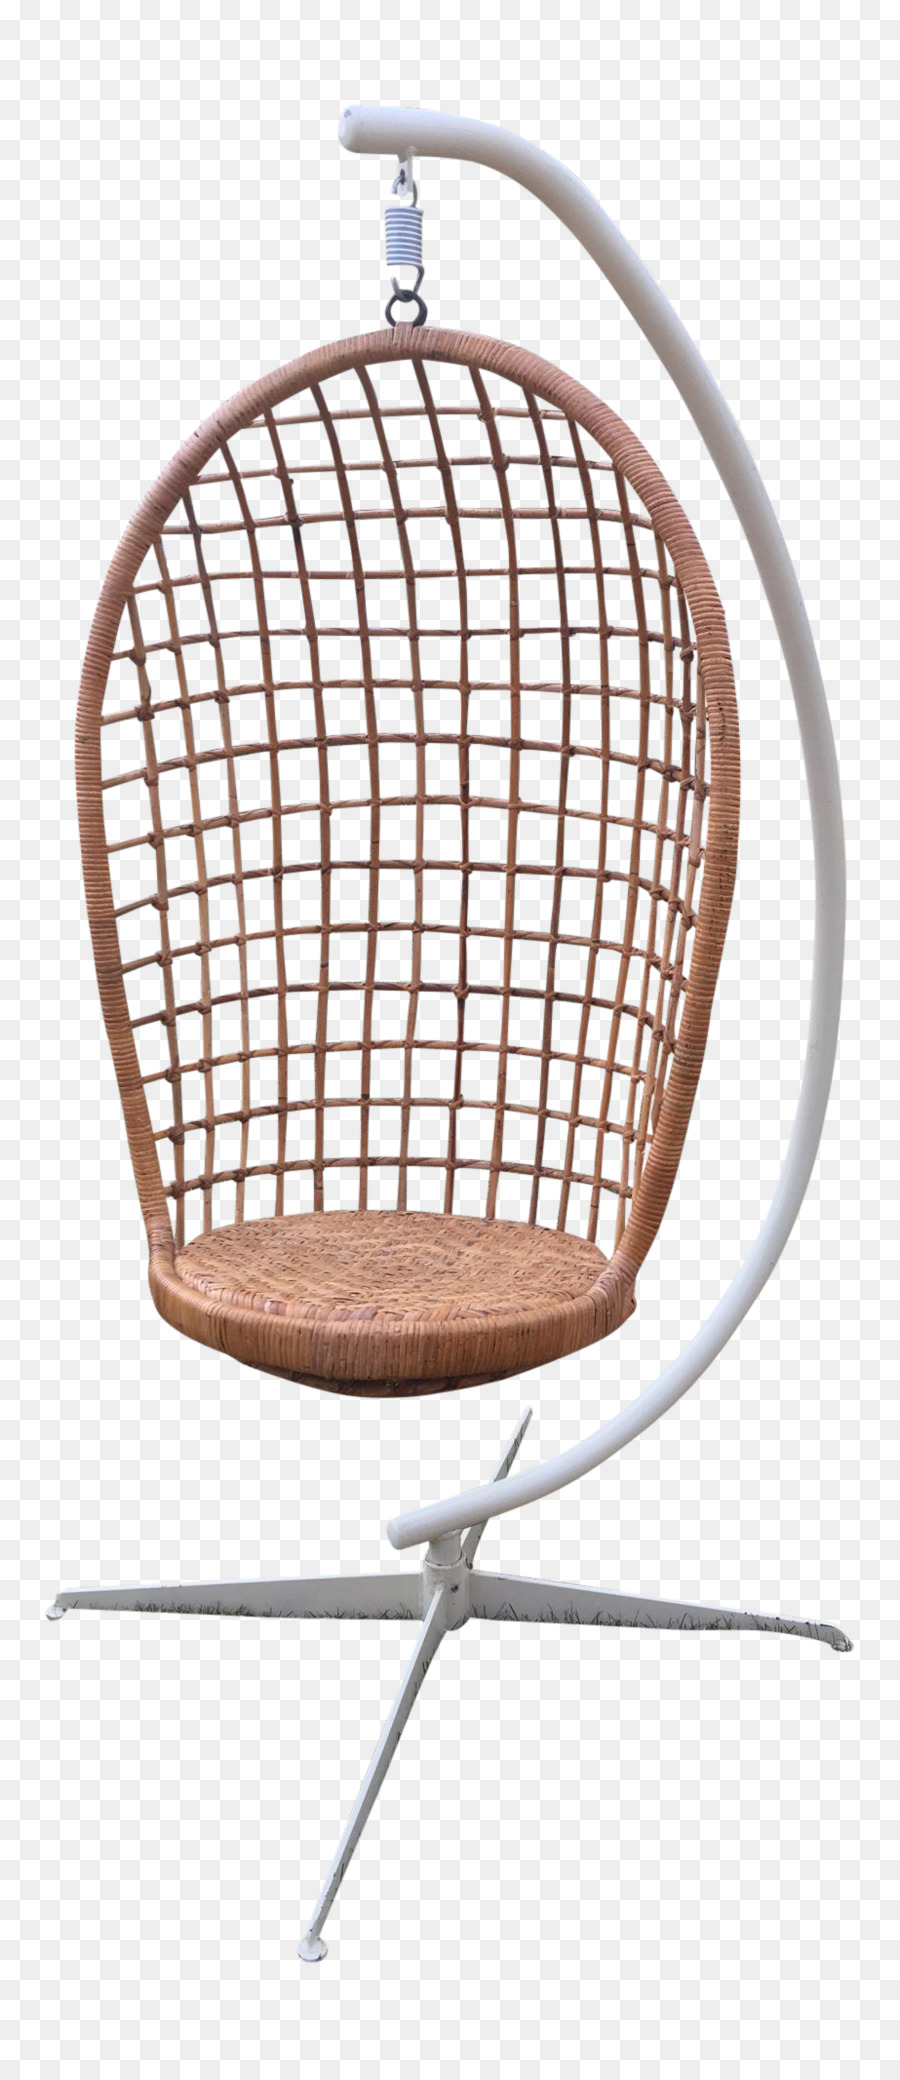 Egg Wicker Chair Chair Egg Wicker Furniture Rattan Green Rattan Png Download